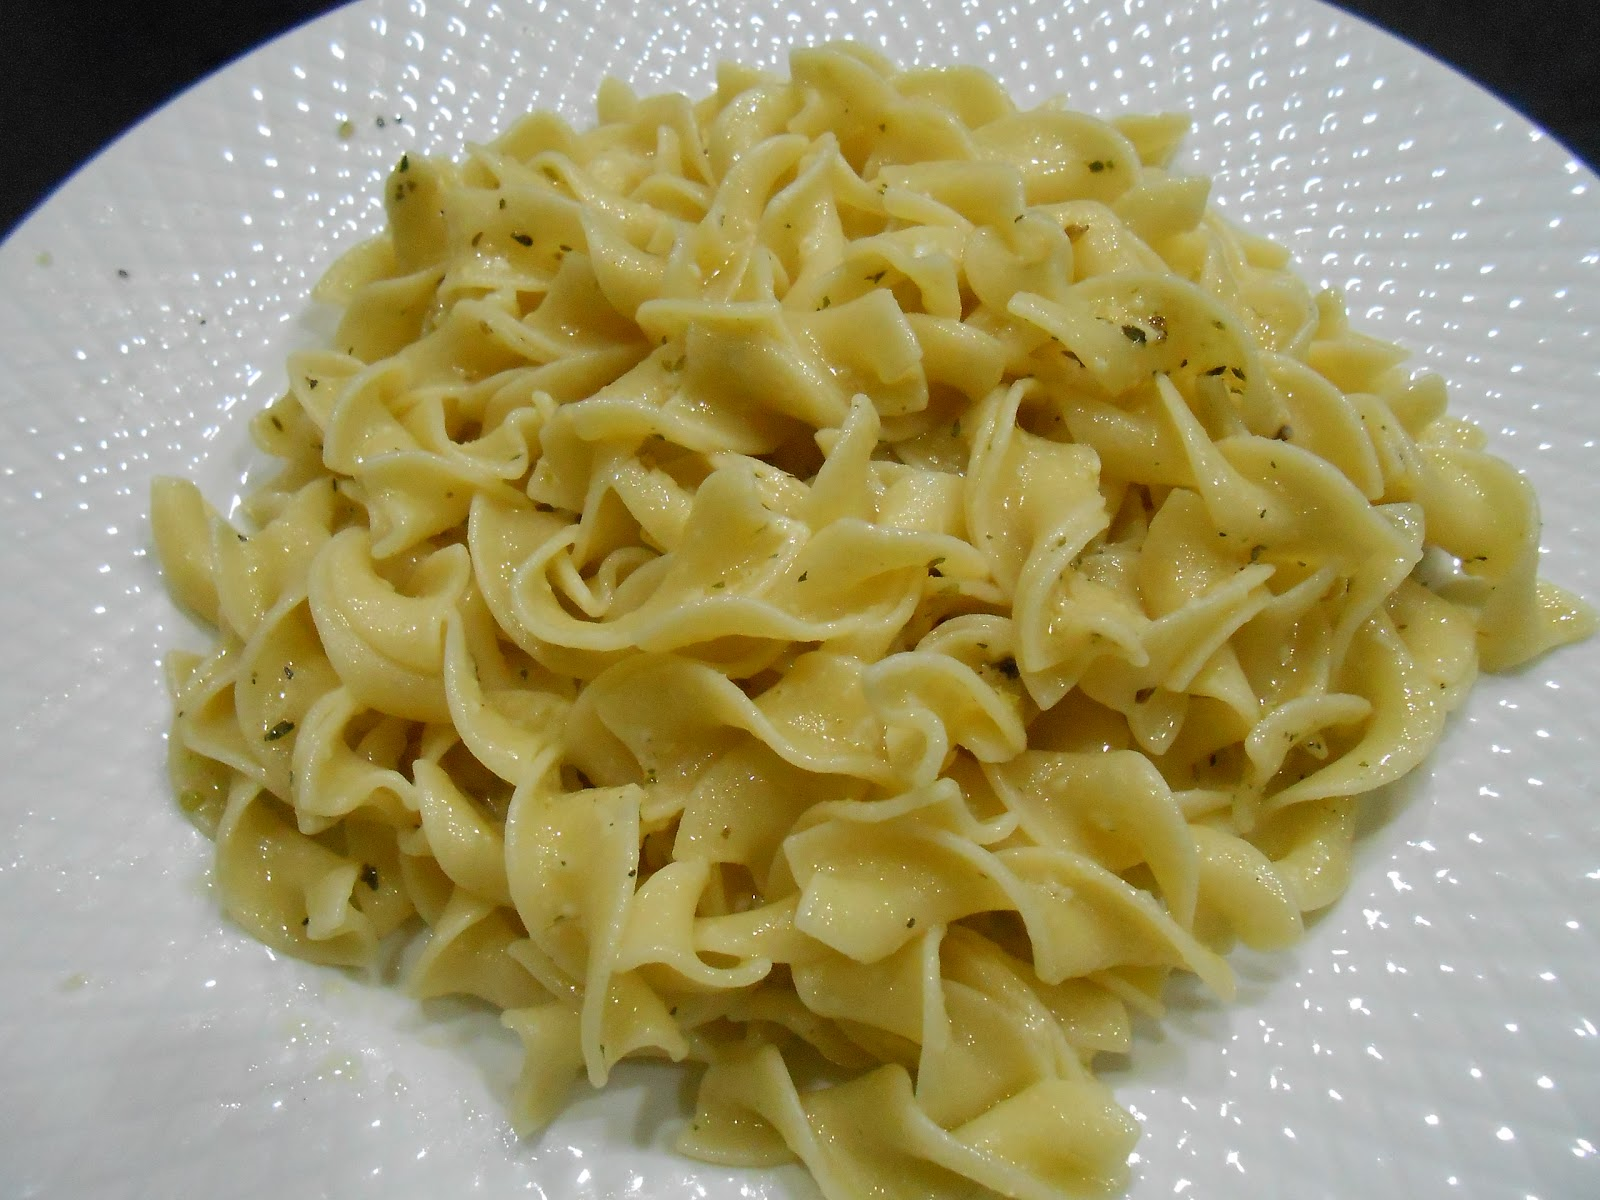 ... Delectable Creations: 5 Min Garlic Buttered Parmesan Egg Noodle Recipe